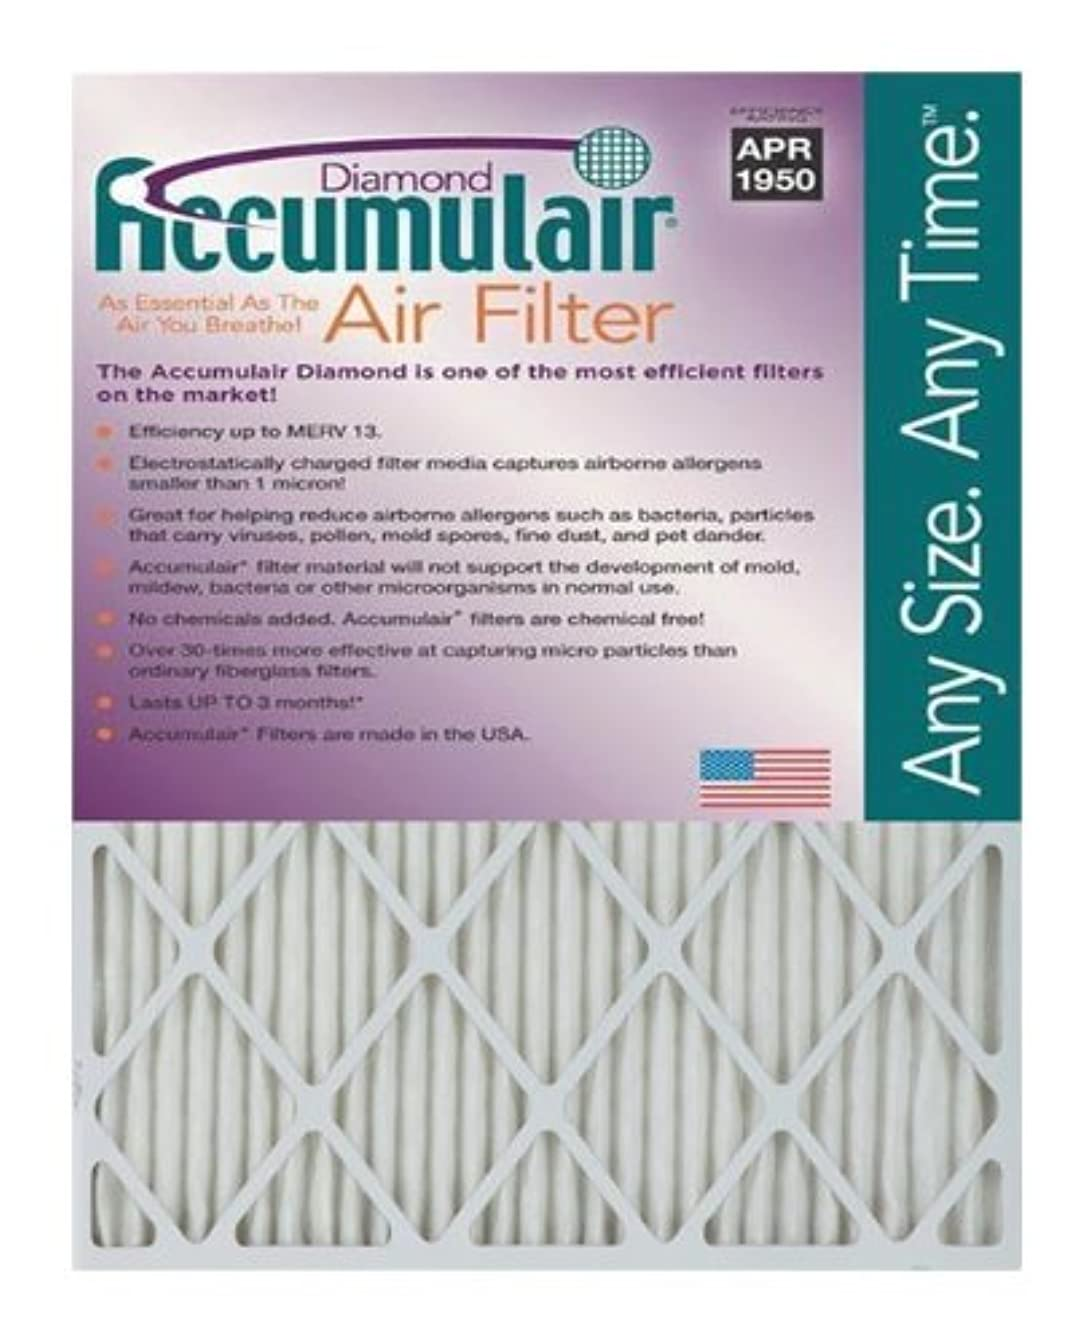 Accumulair Diamond 20x23x1 (19.5x22.5) MERV 13 Air Filter/Furnace Filter (3 Pack)